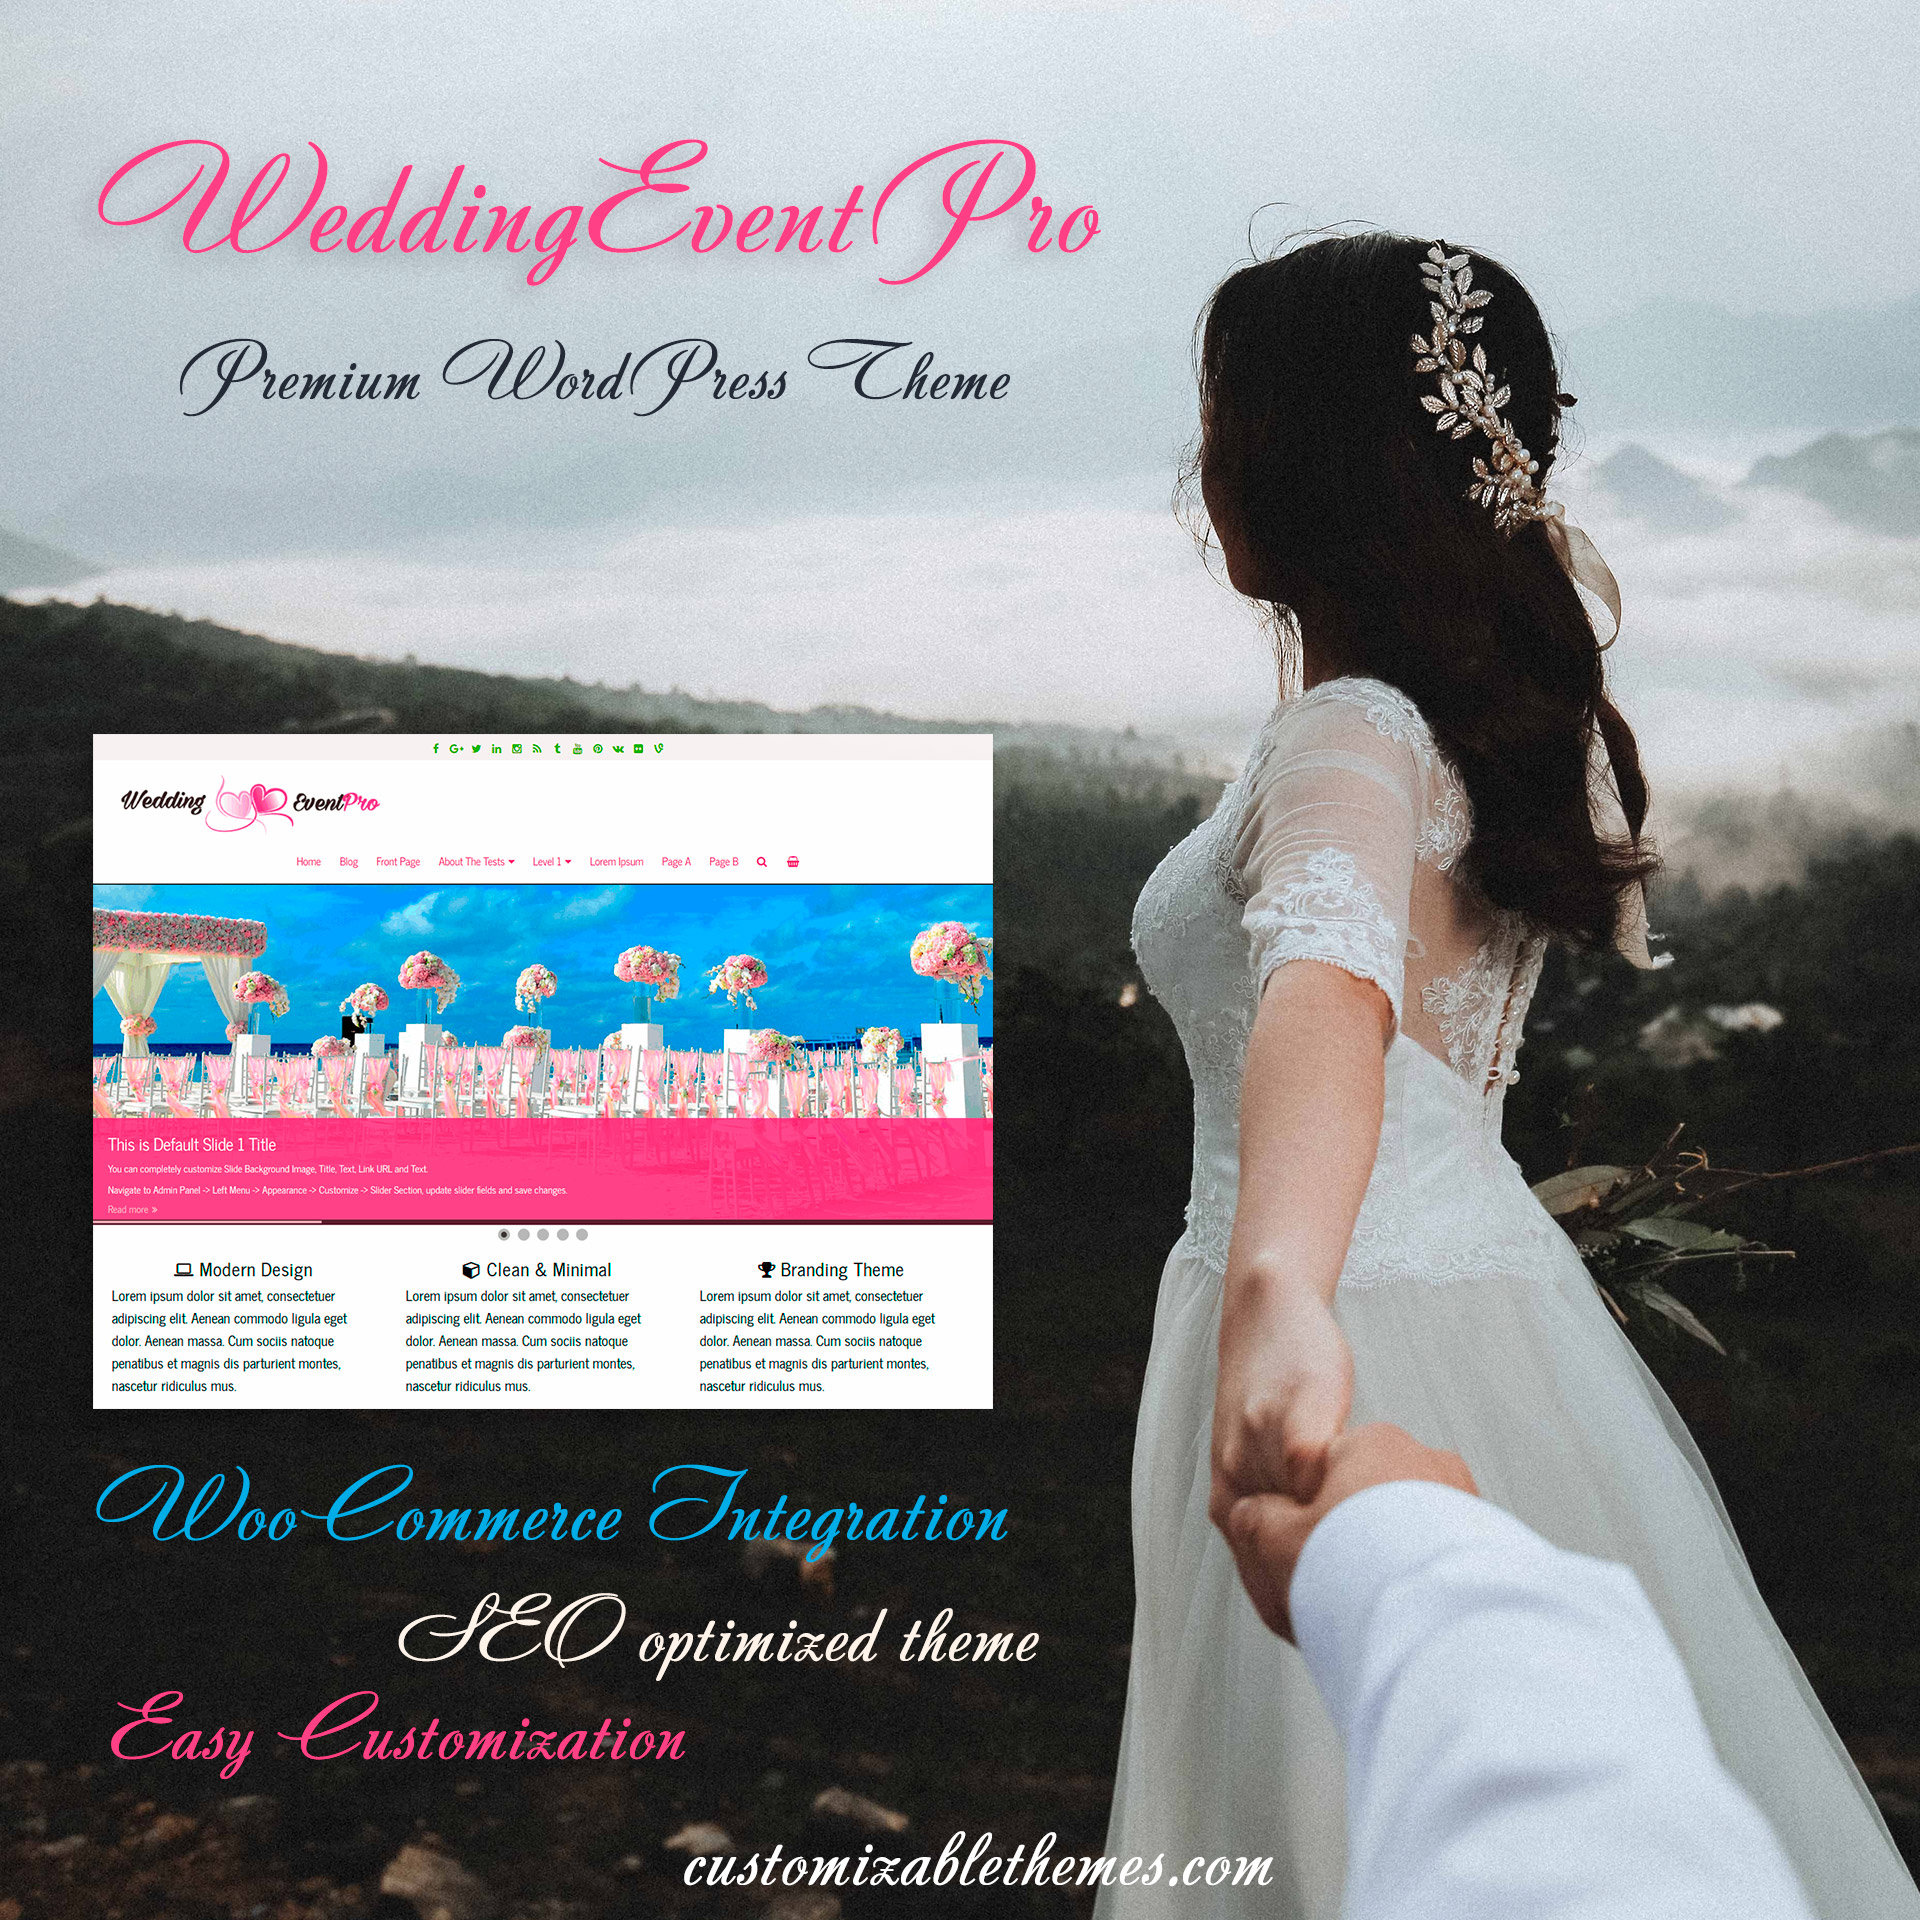 weddingeventpro-premium-wordpress-theme-mockup-customizablethemes-com